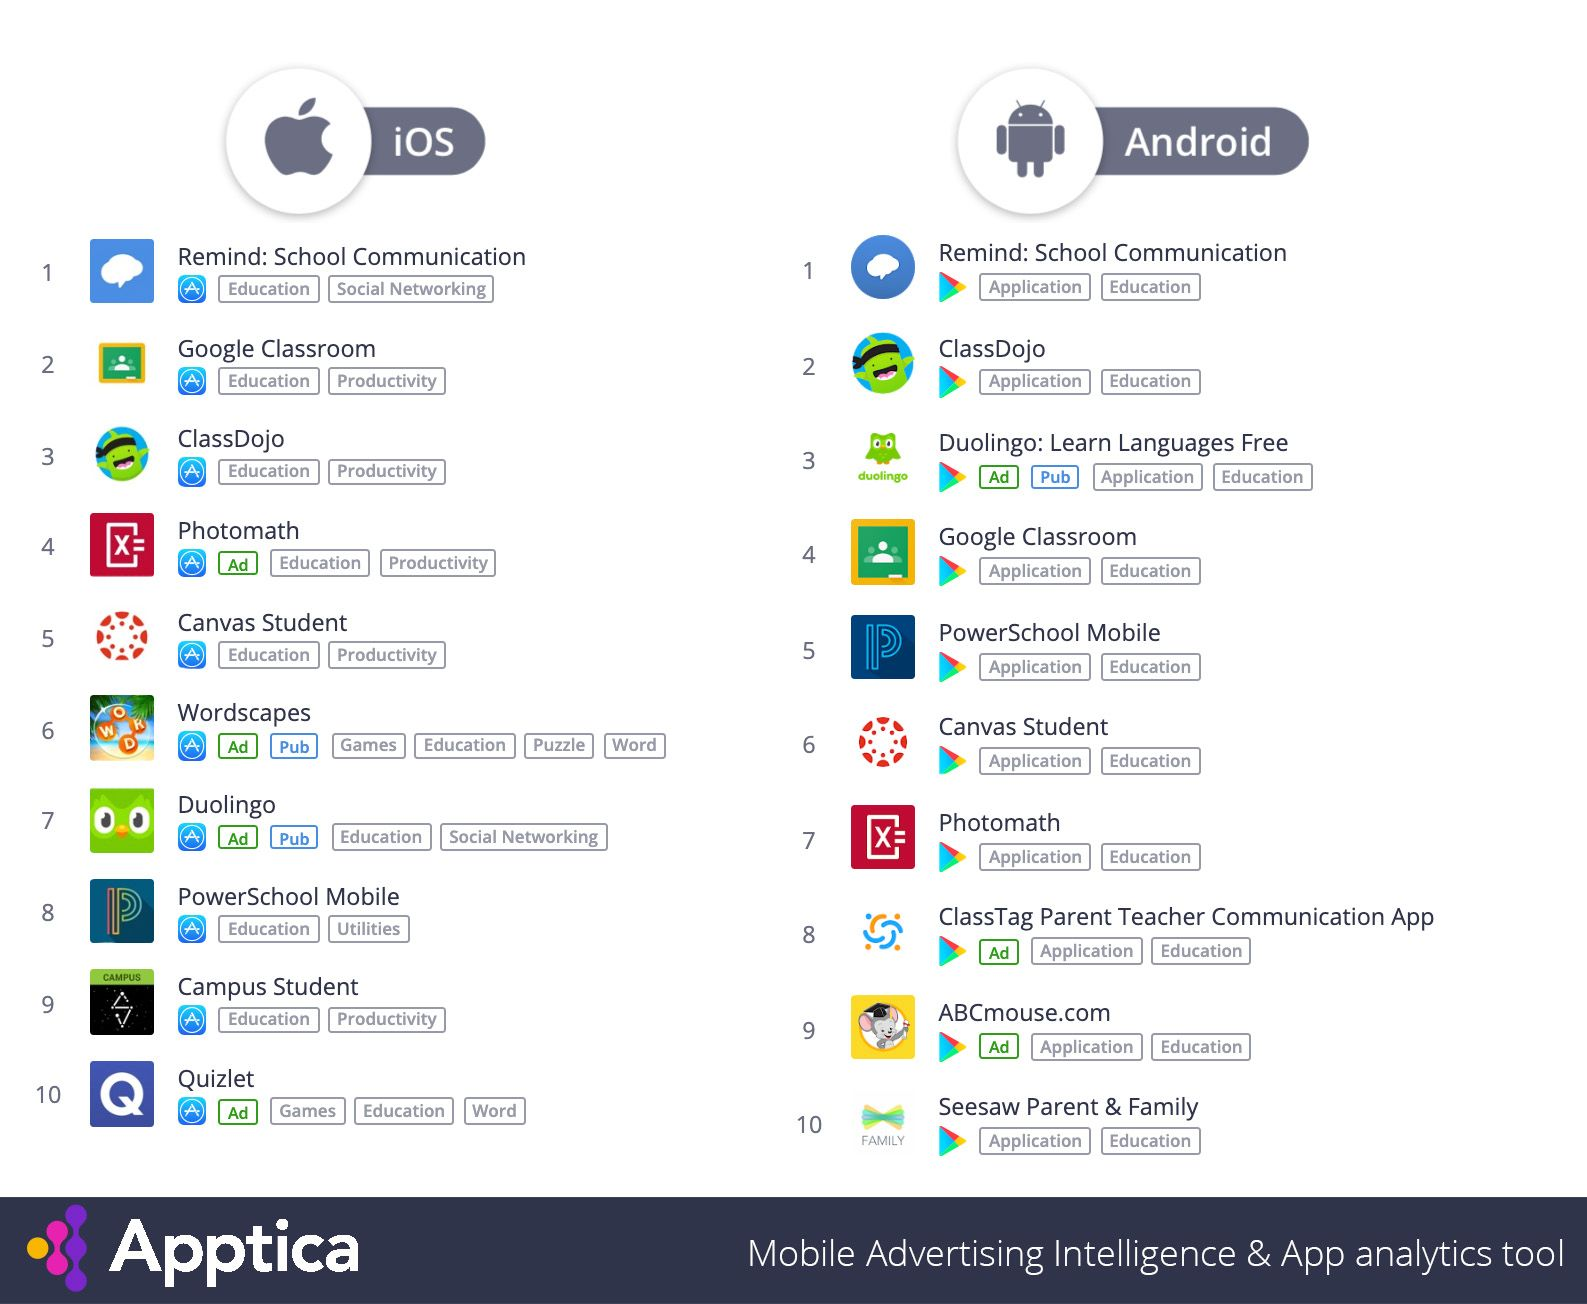 Top Apps in category 'Education' by downloads in the US, August 2019